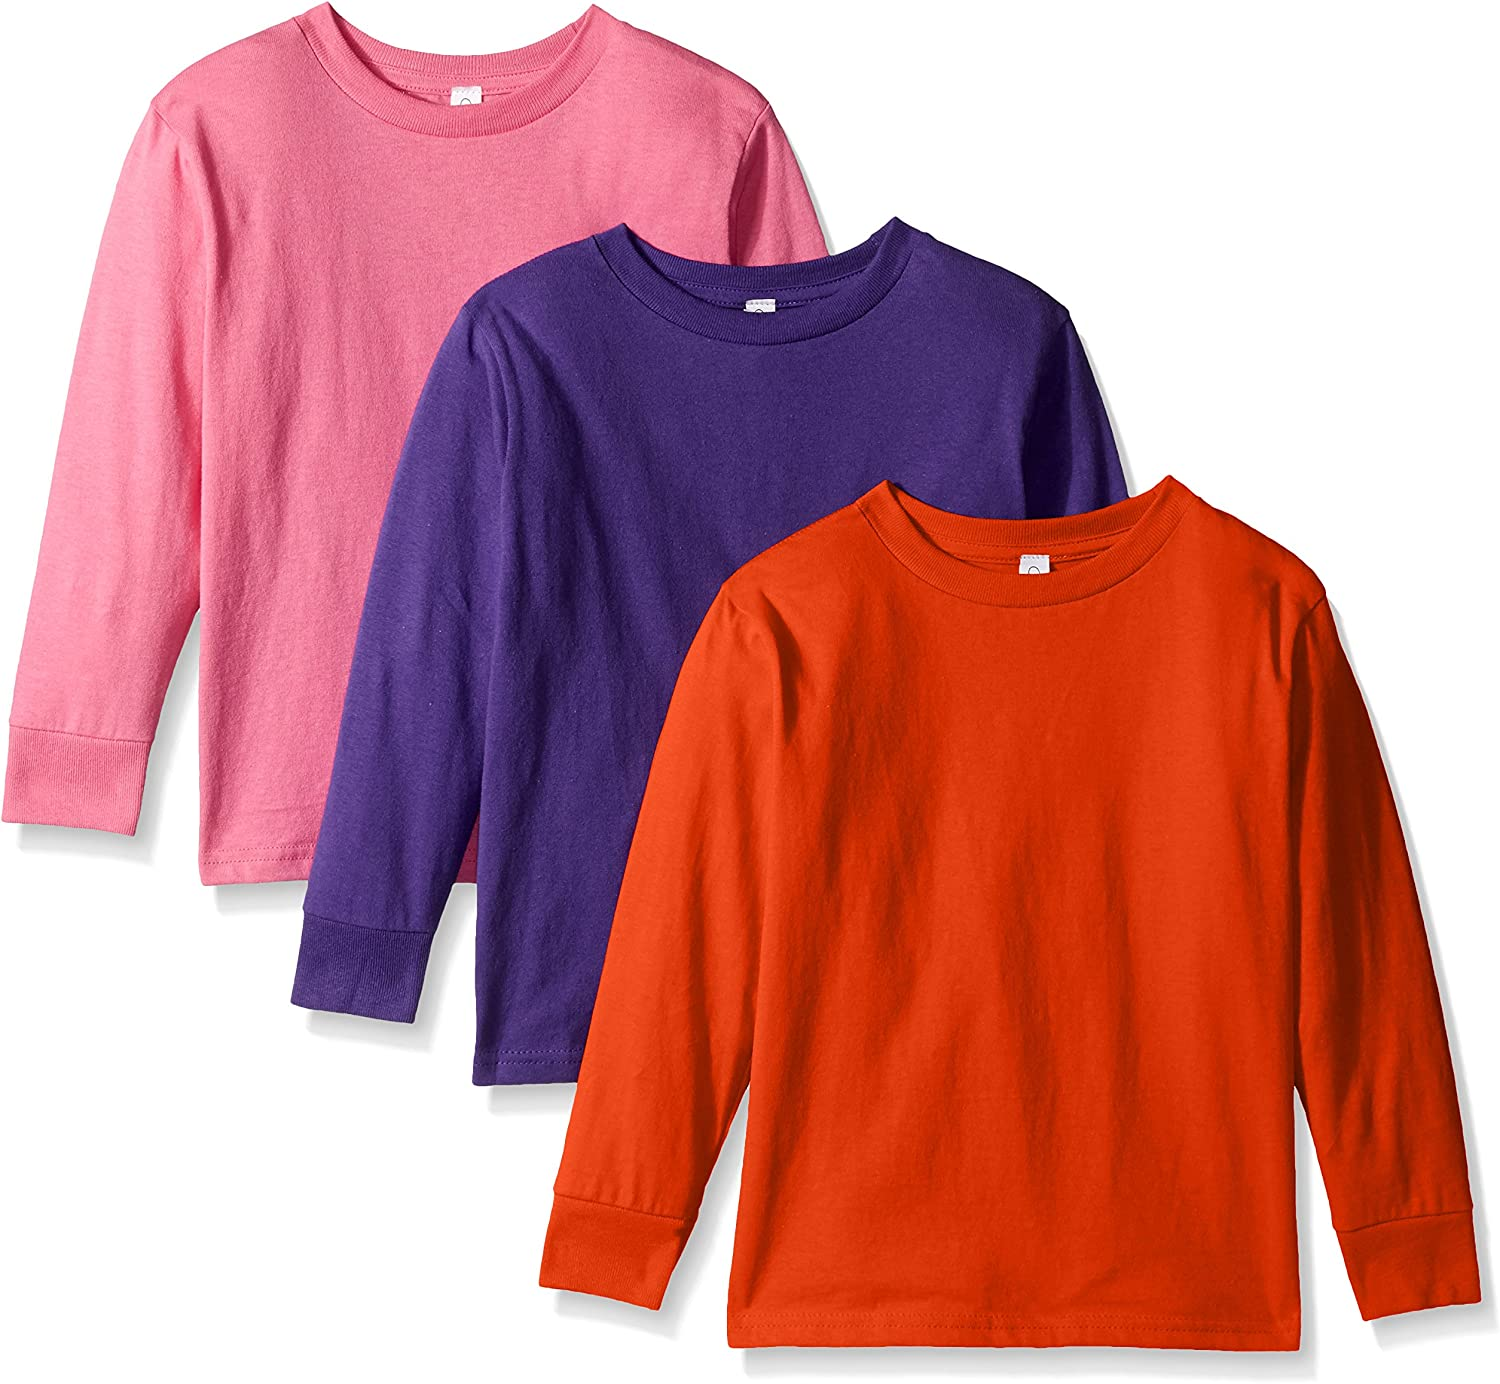 Clementine Apparel Girls Long Sleeve Basic Tee 3pack TShirt